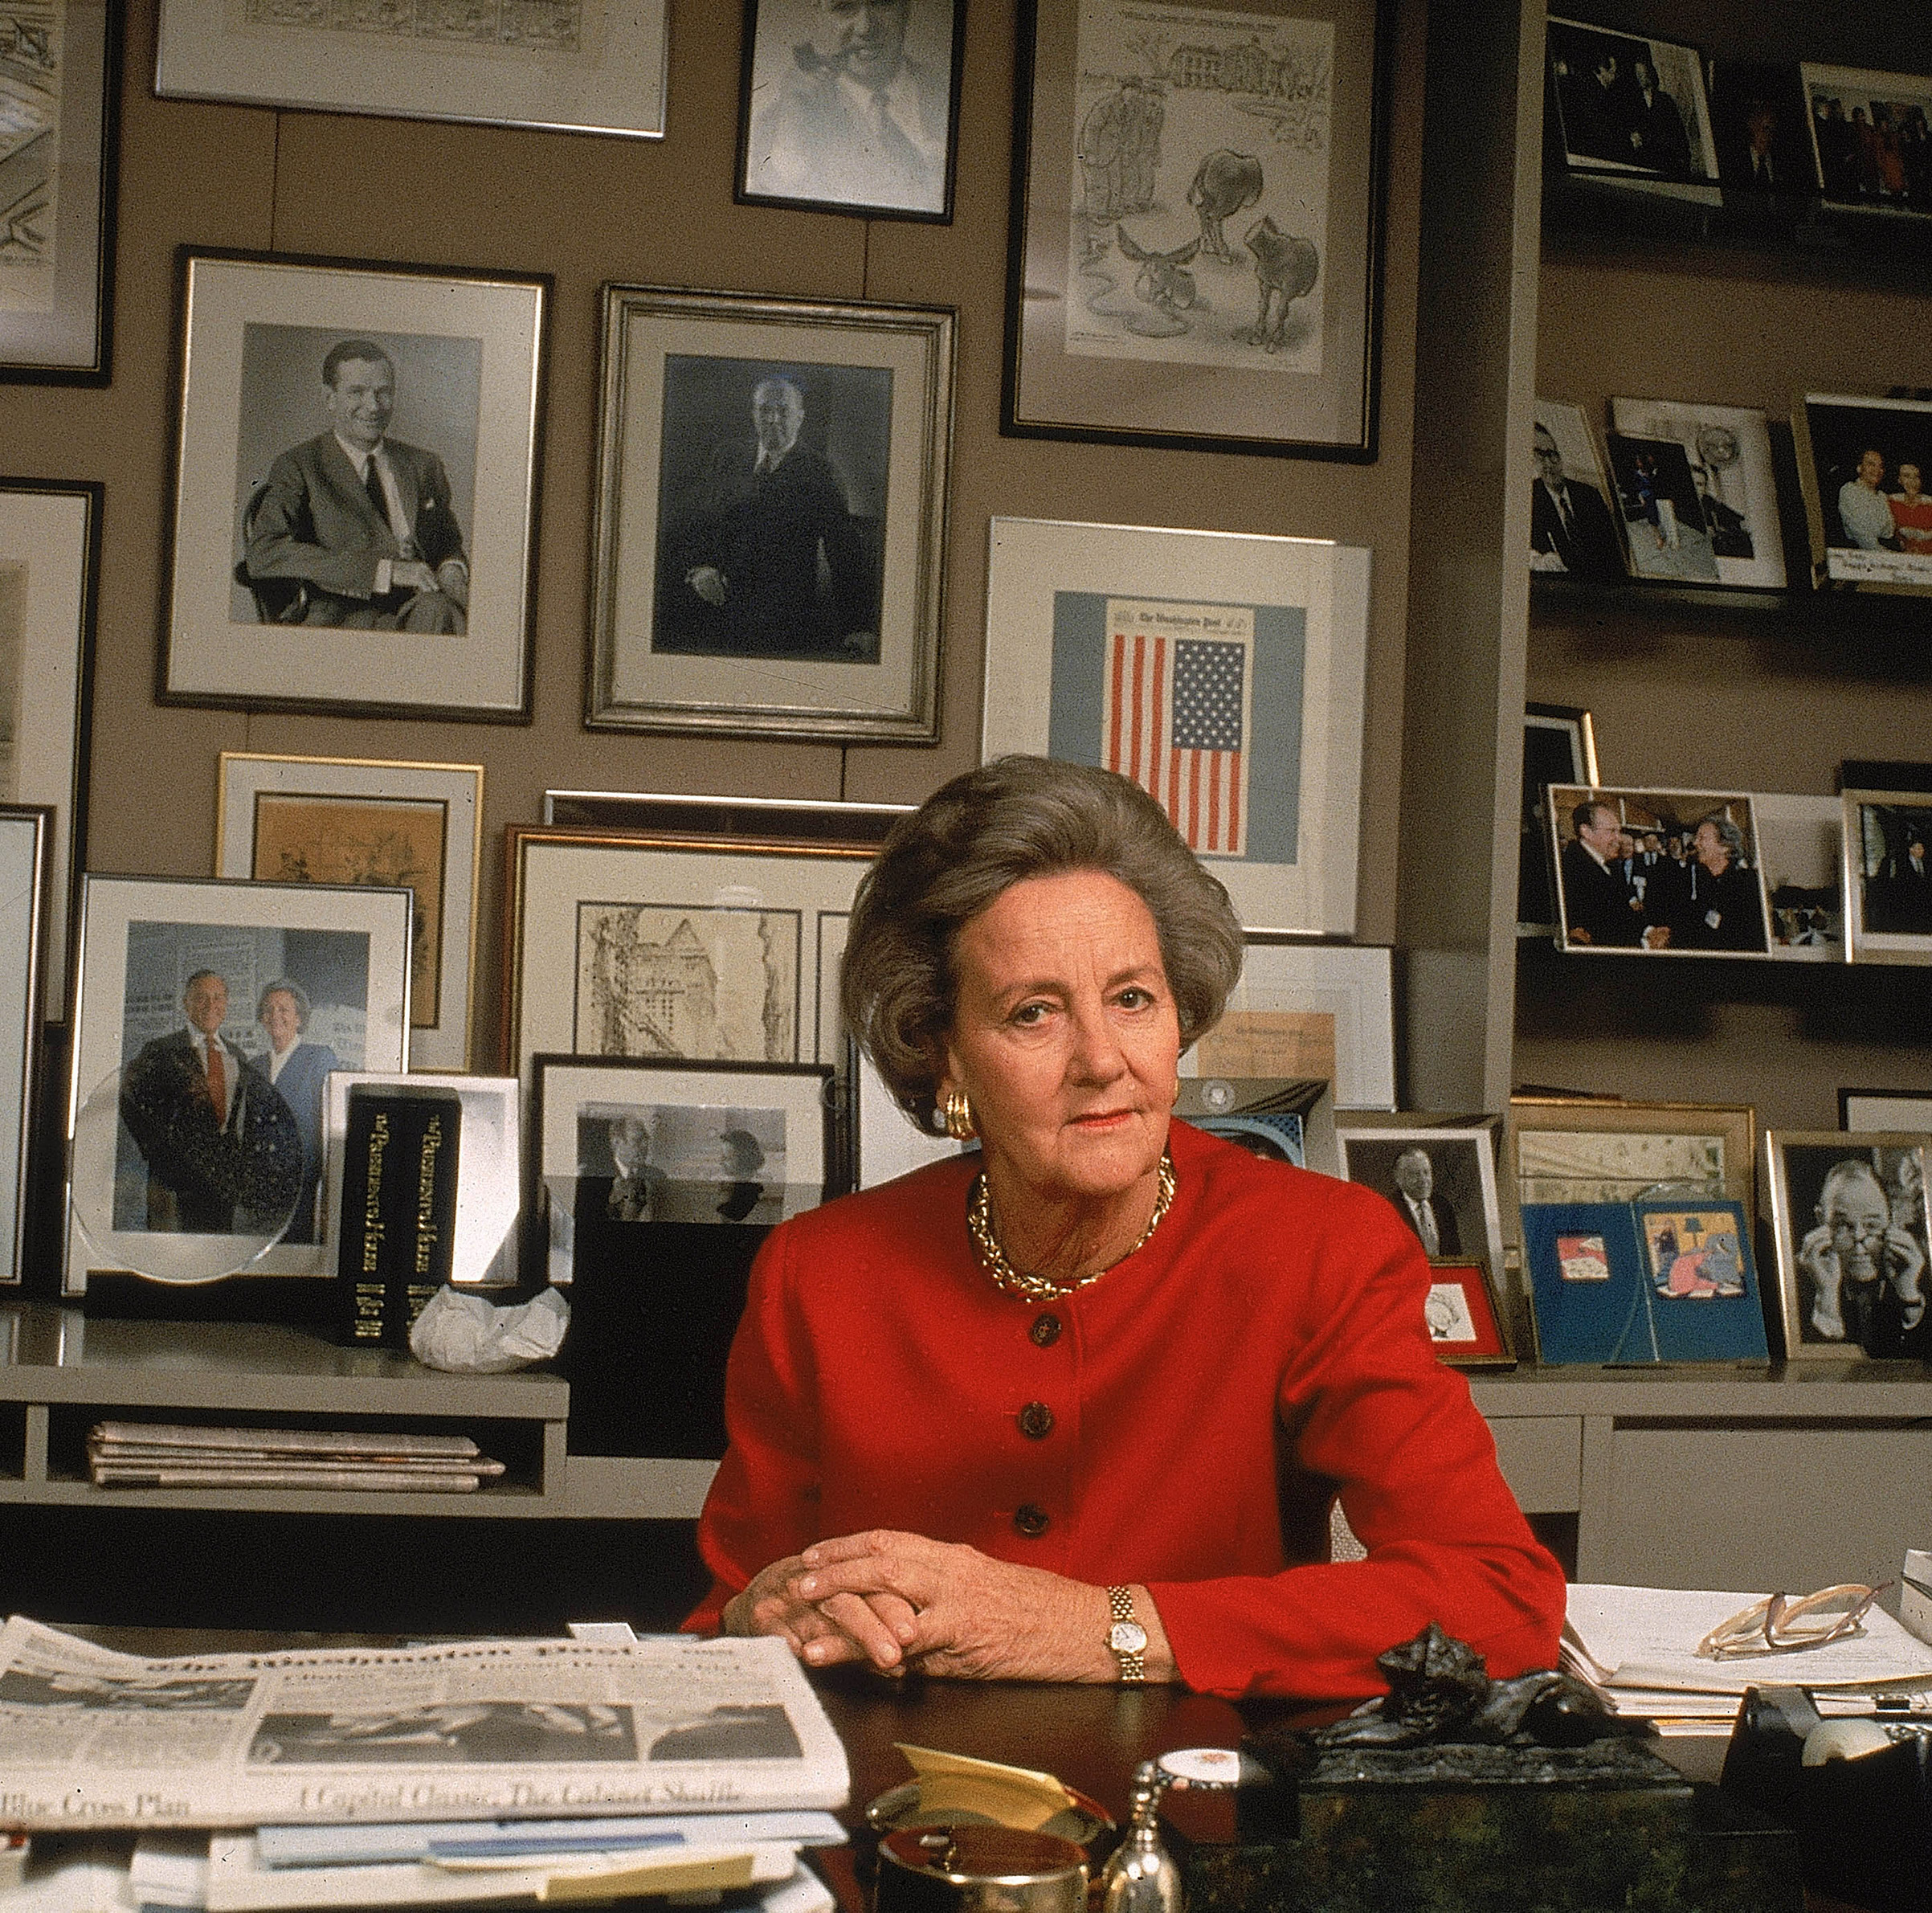 KATHARINE GRAHAM became the first female Fortune 500 CEO as CEO of the Washington Post in 1972.